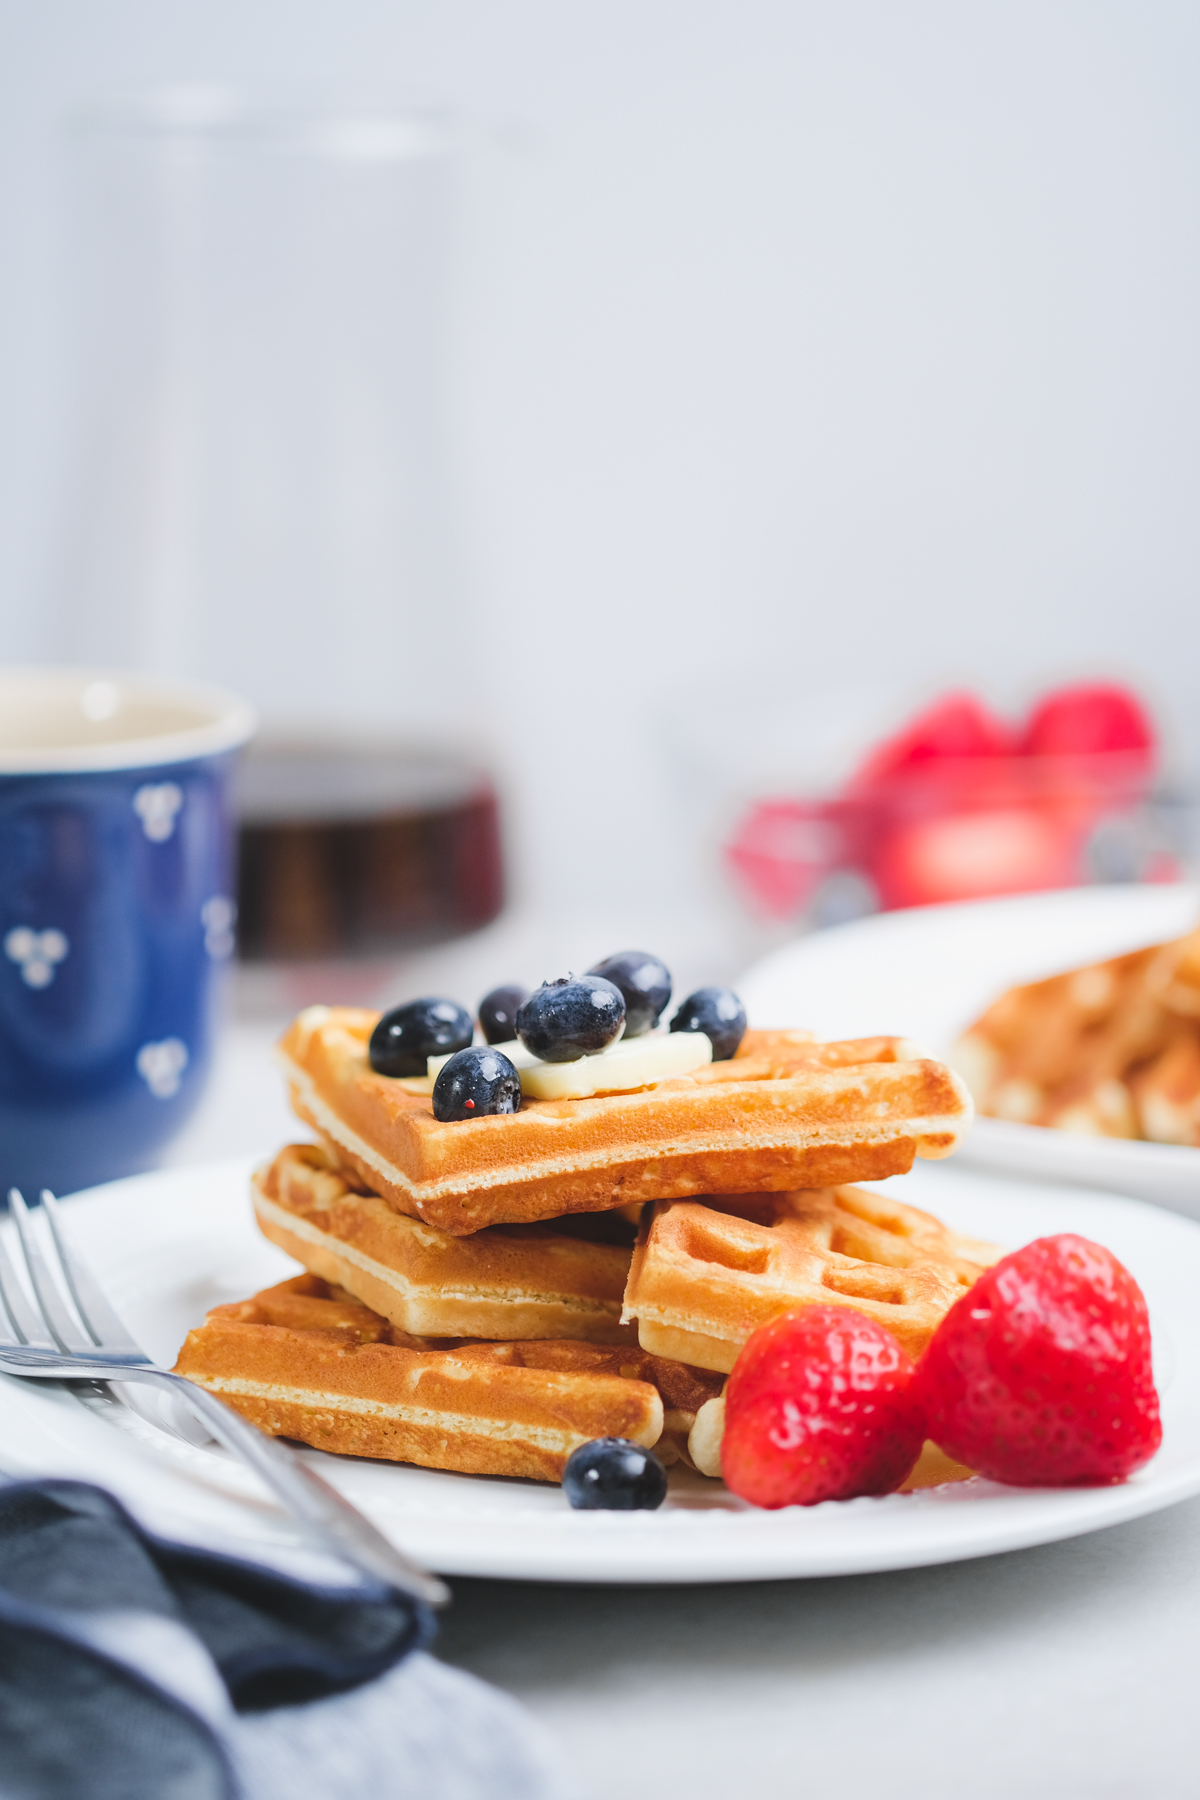 old fashioned waffles stacked on a plate with berries